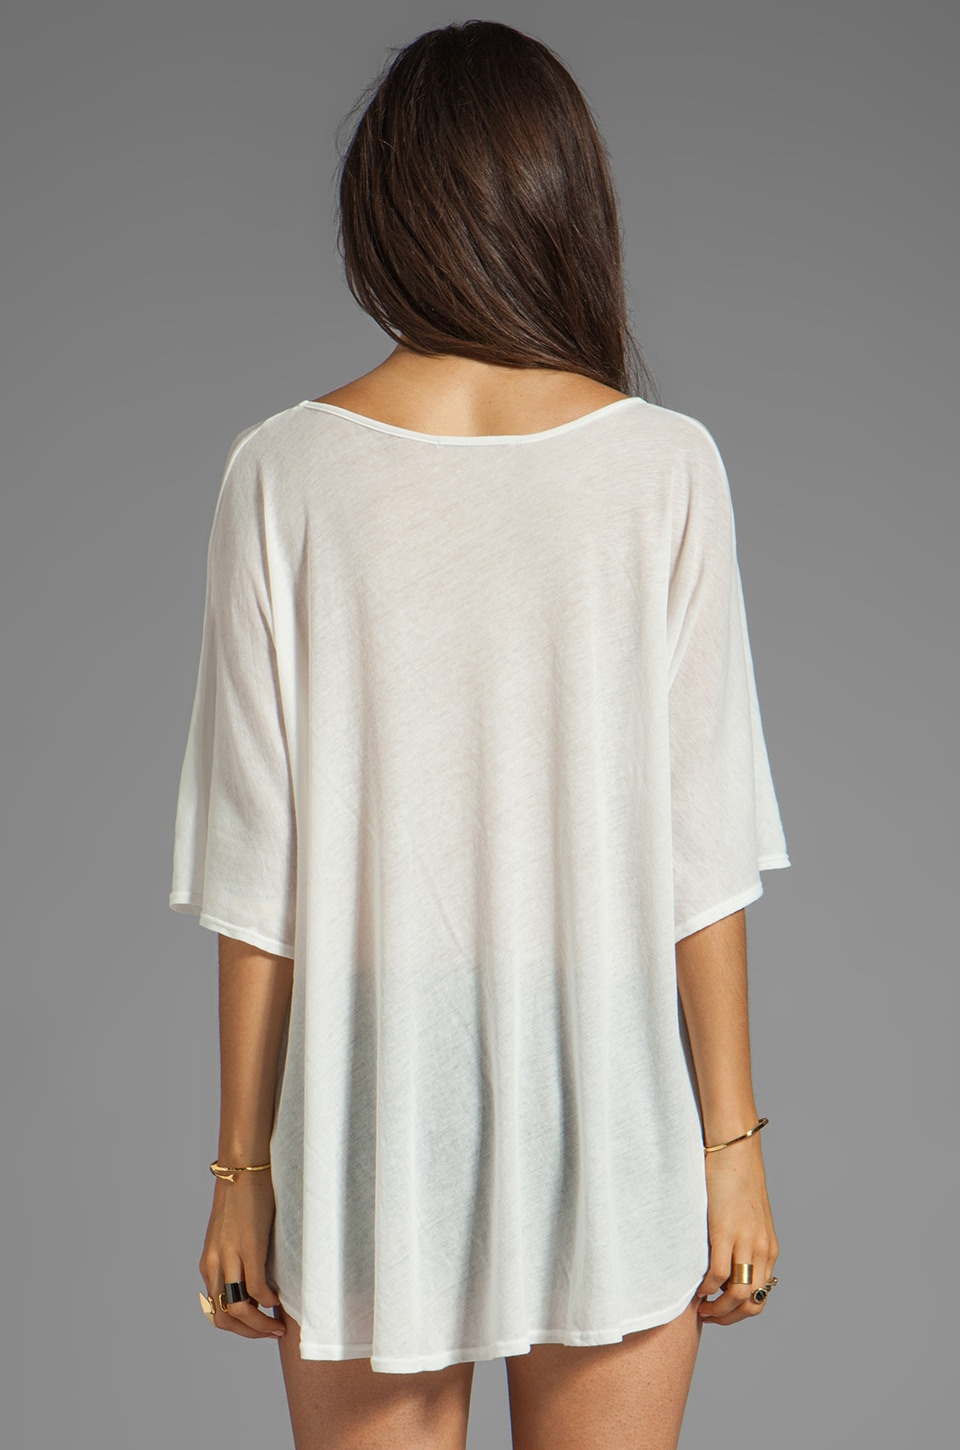 Wildfox Couture No Skinny Dipping Tahiti Tunic in Bright Cloud